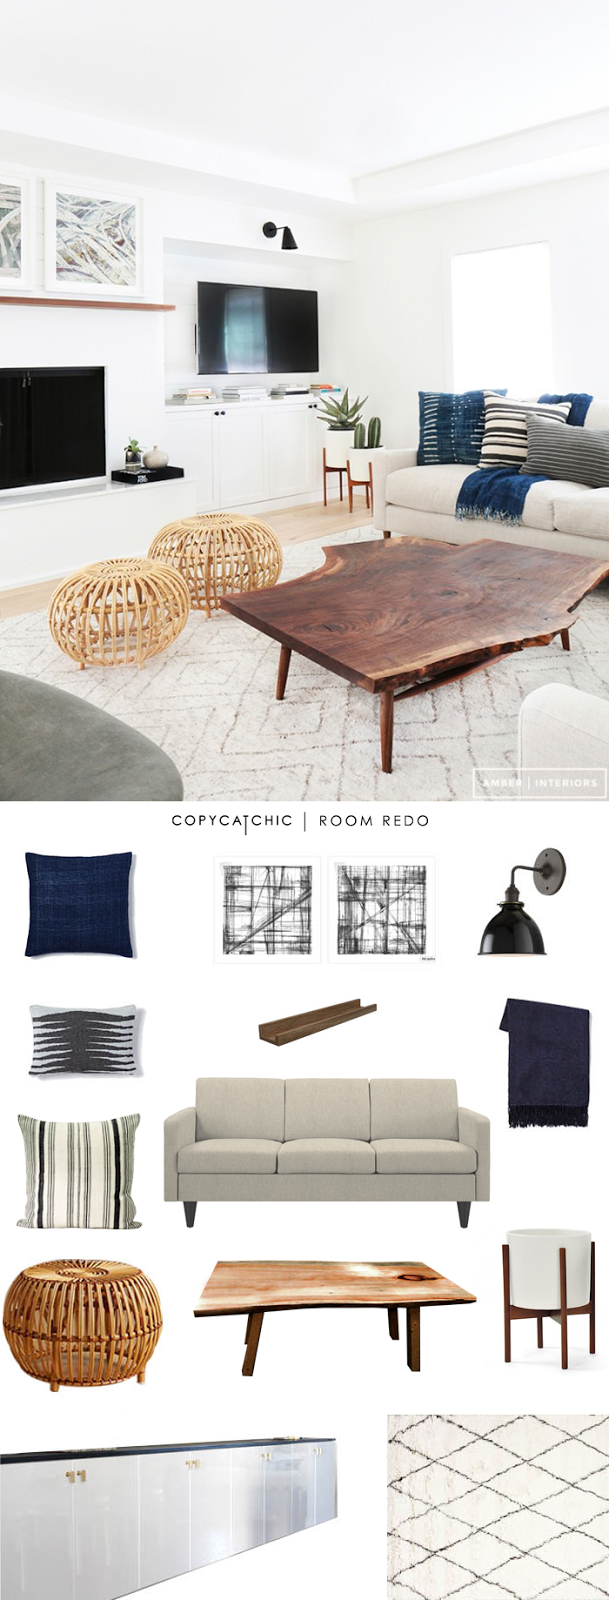 Copy Cat Chic Room Redo | Cool and Calm Living Room